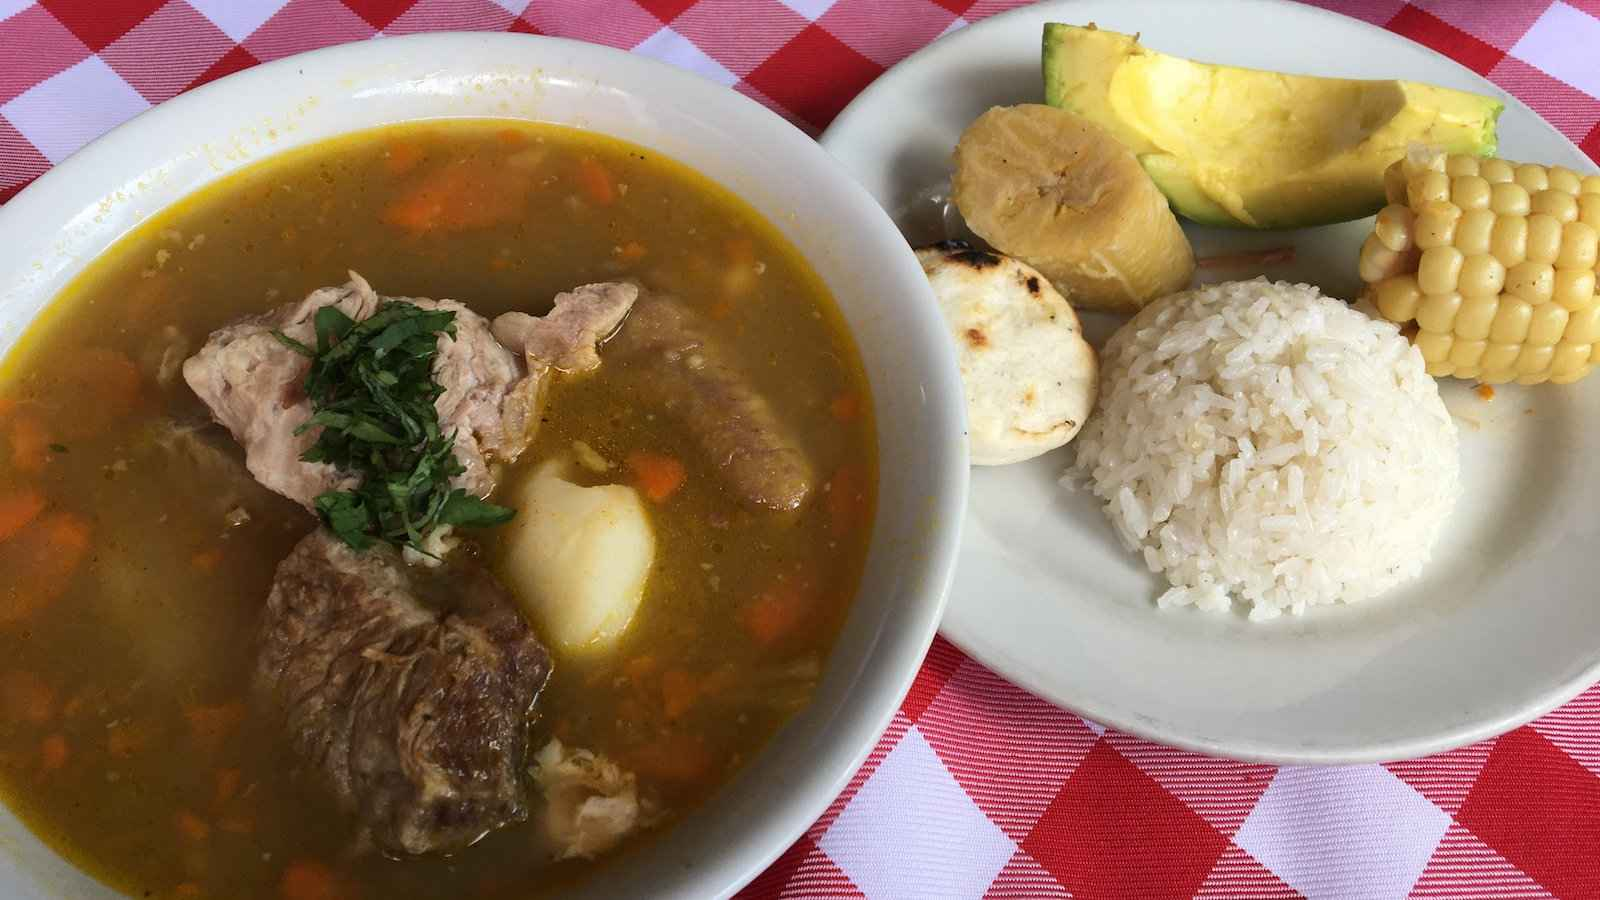 Sancocho is a hearty stew from Colombia that is made differently all over but is pretty much always delicious